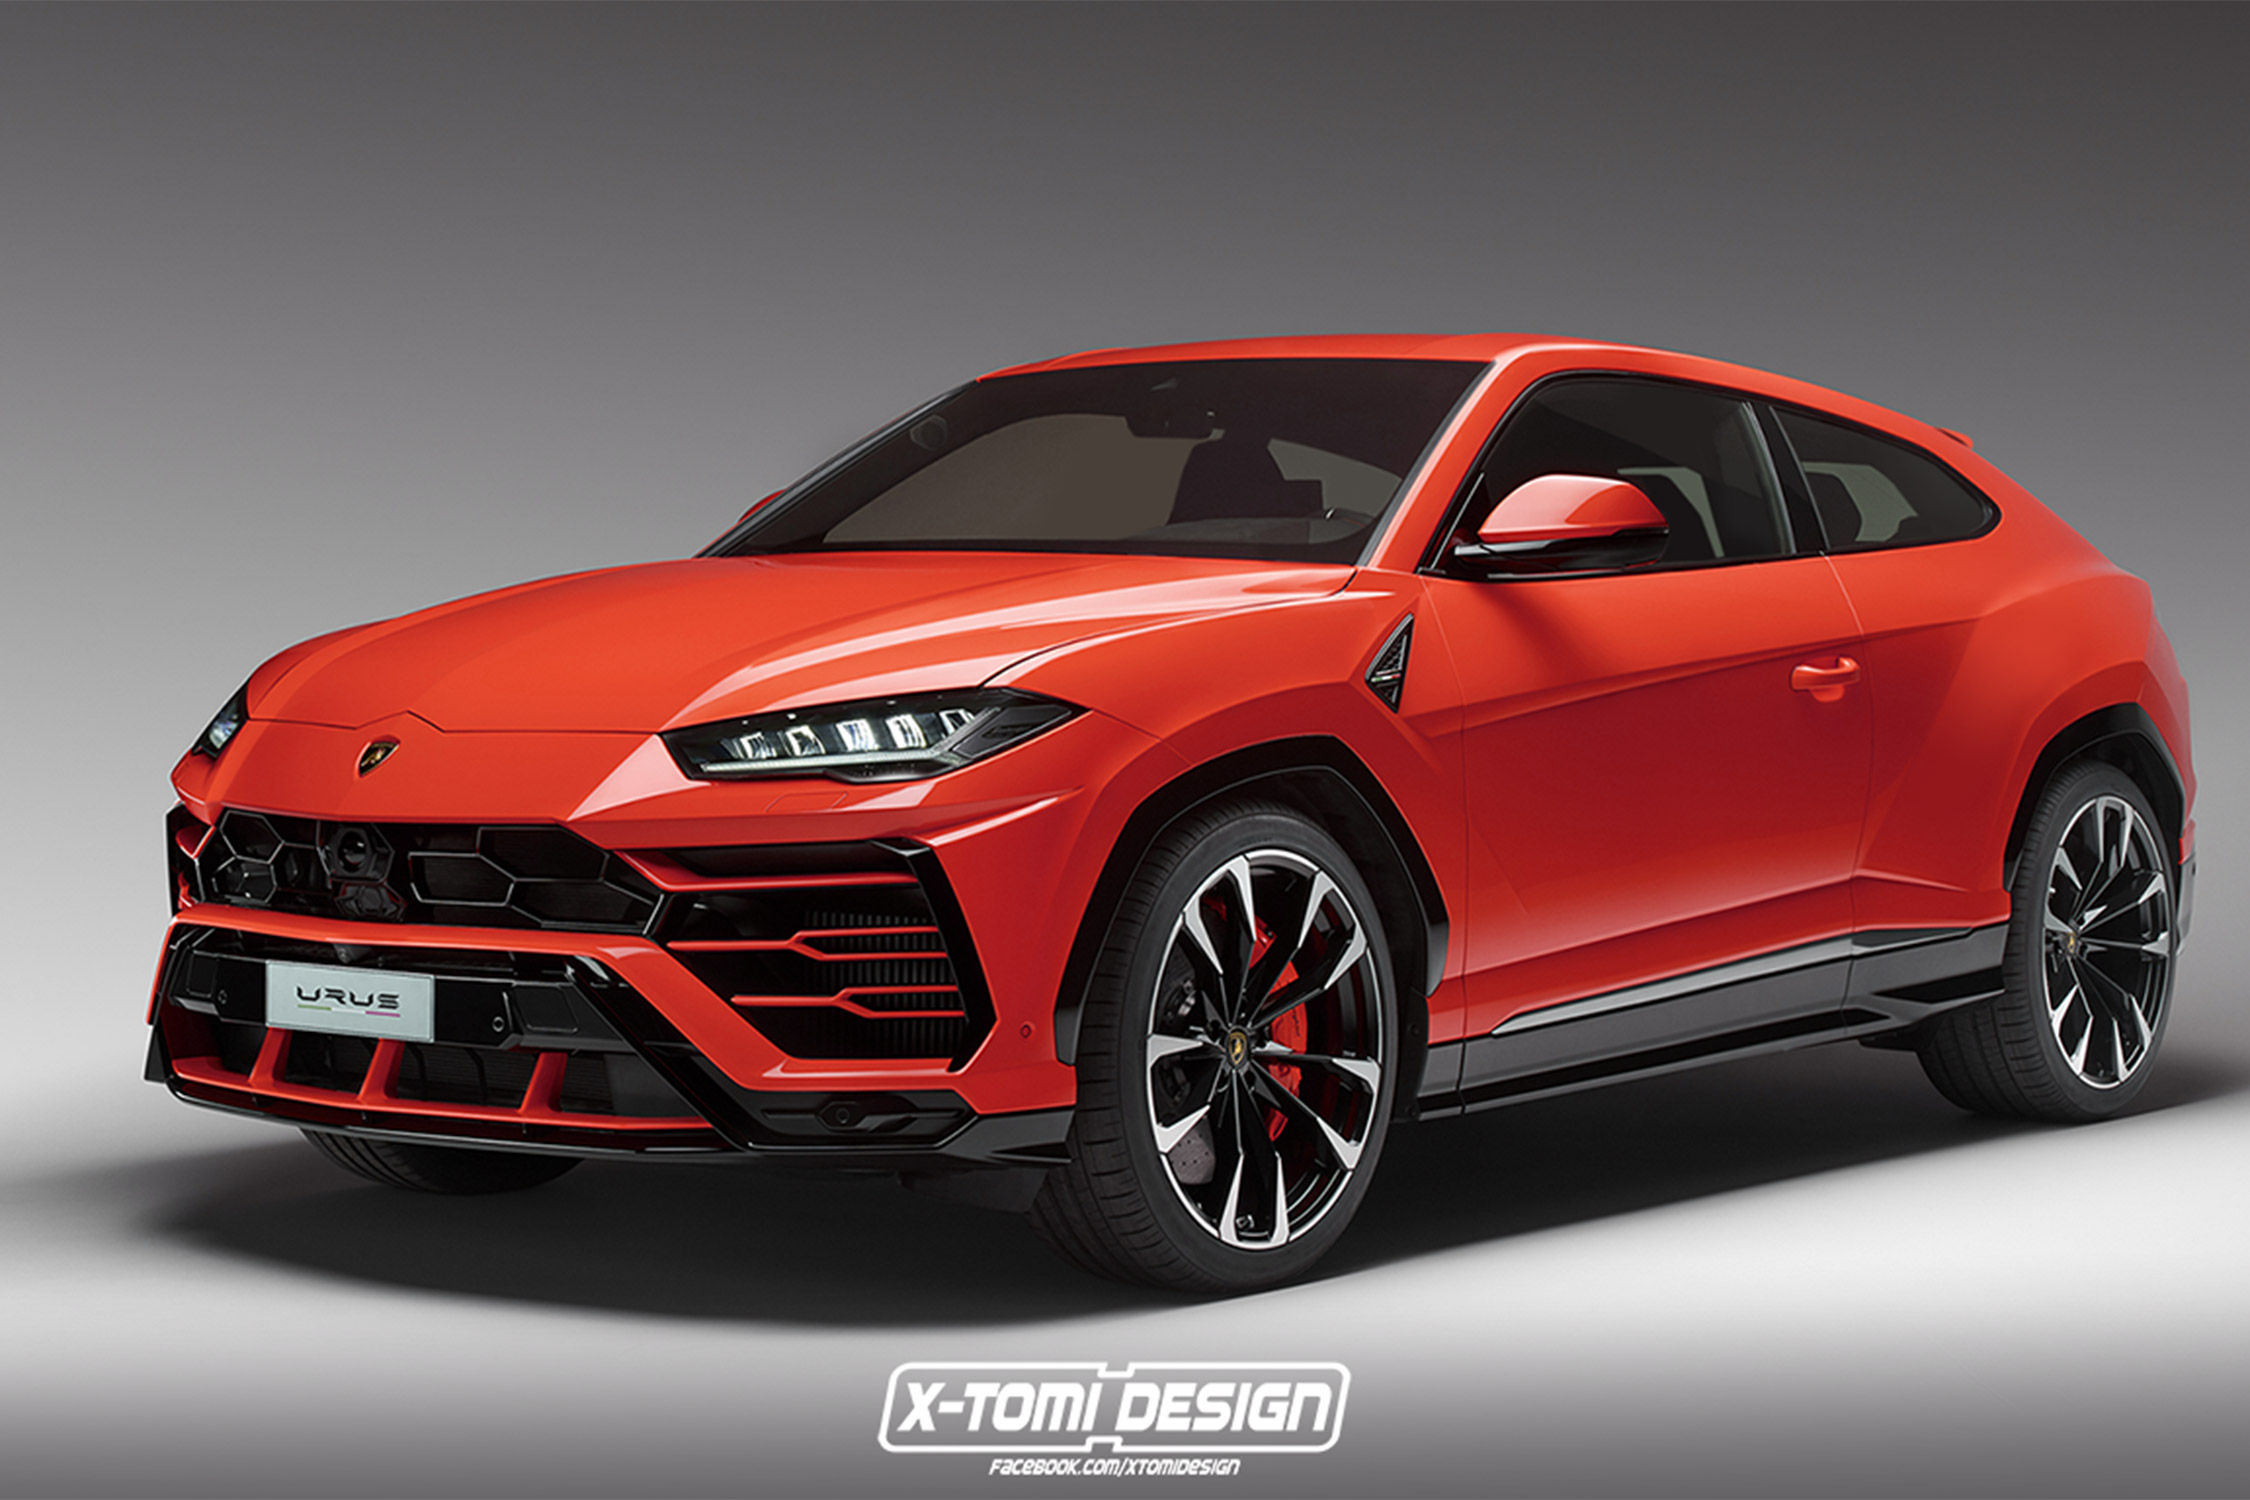 lamborghini urus coup par x tomi design actualit automobile motorlegend. Black Bedroom Furniture Sets. Home Design Ideas